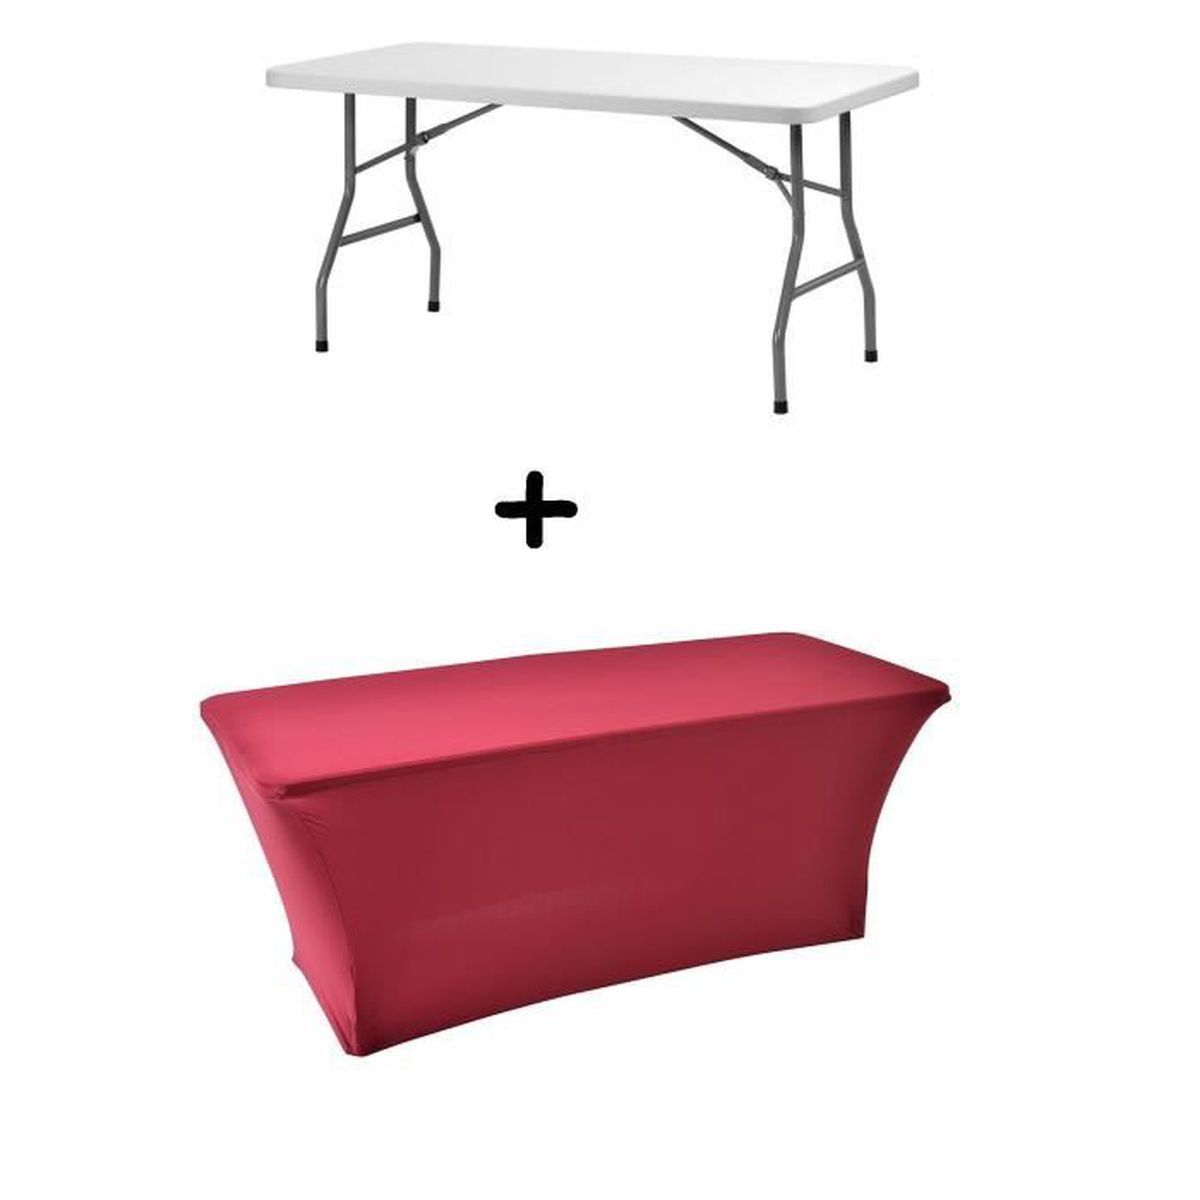 Table buffet 8 personnes pliables housse extensible for Table extensible 6 a 8 personnes blooma